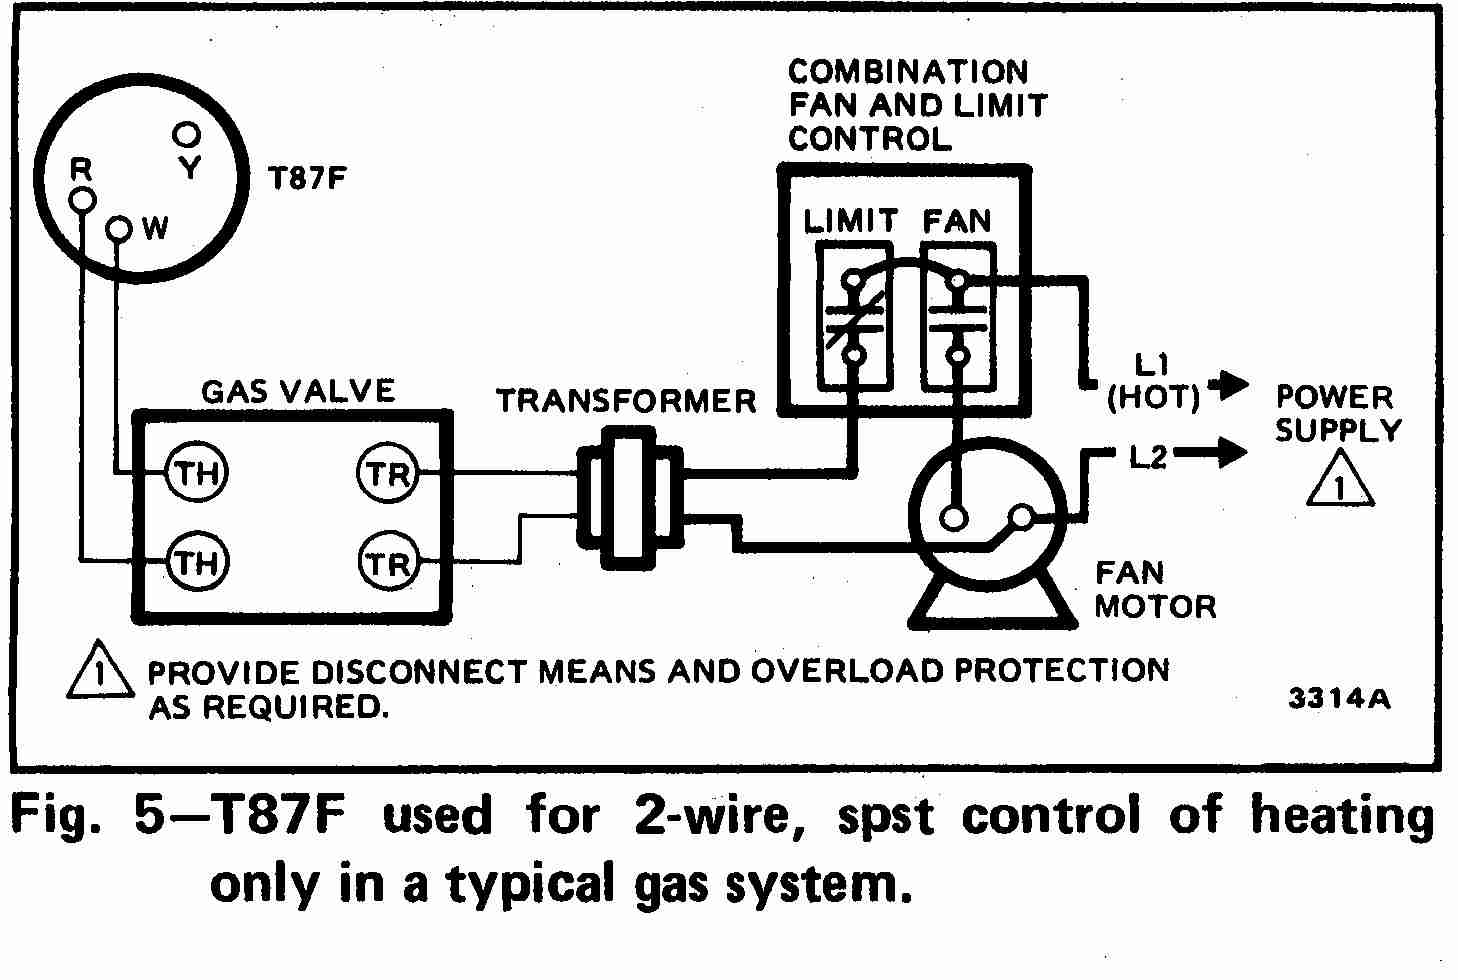 TT_T87F_0002_2Wg_DJF space heater wiring diagram s700 electric heater wire diagram Control Panel Electrical Wiring Basics at gsmx.co